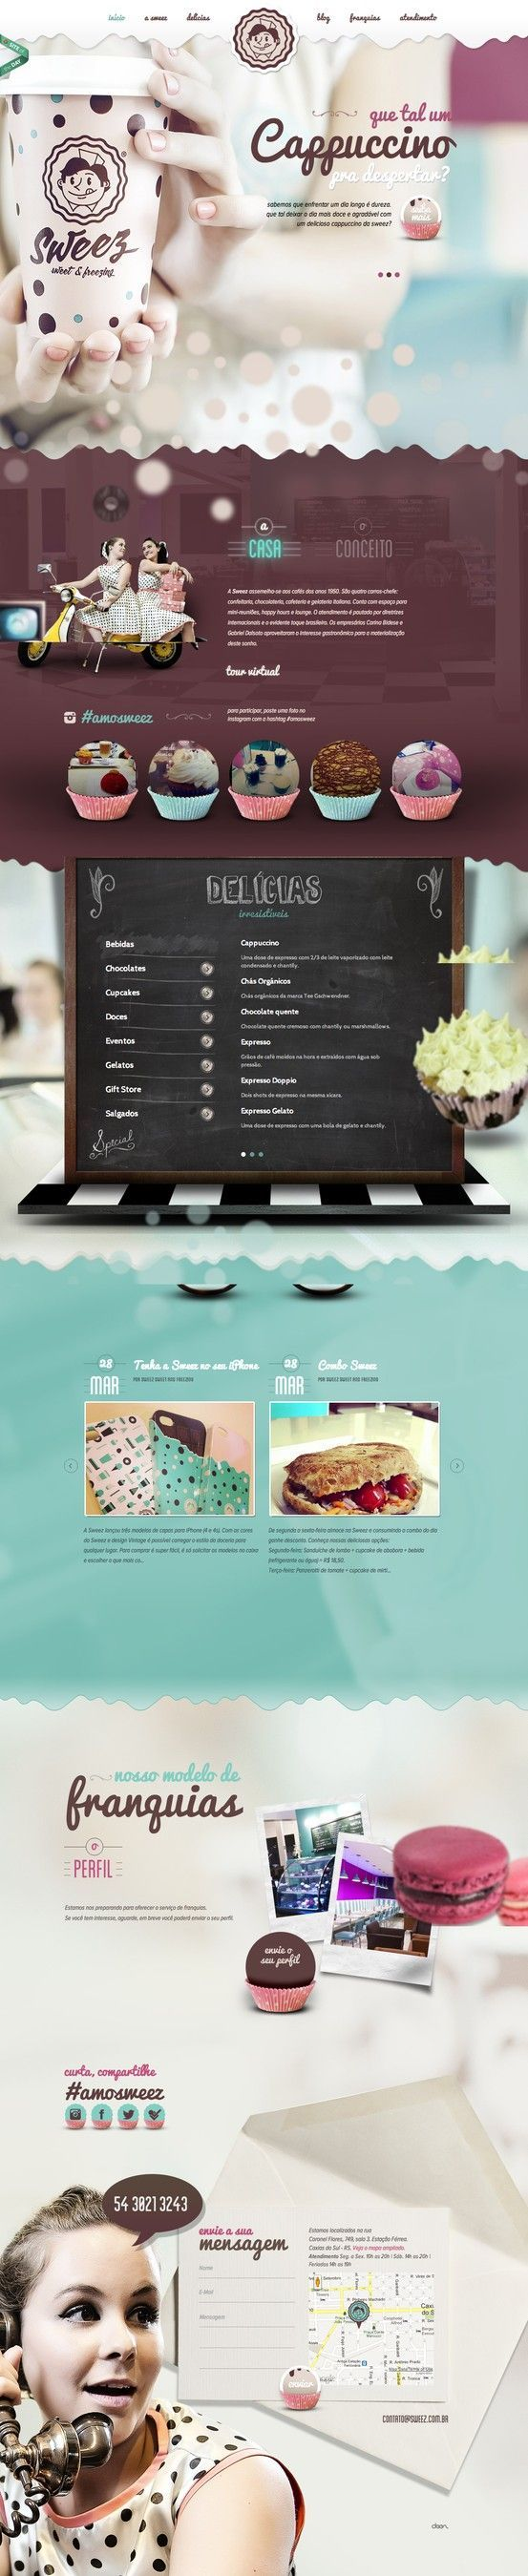 http://www.sweez.com.br/ - Soft, Light Hearted, Fanciful, Pastel/Muted Color Scheme